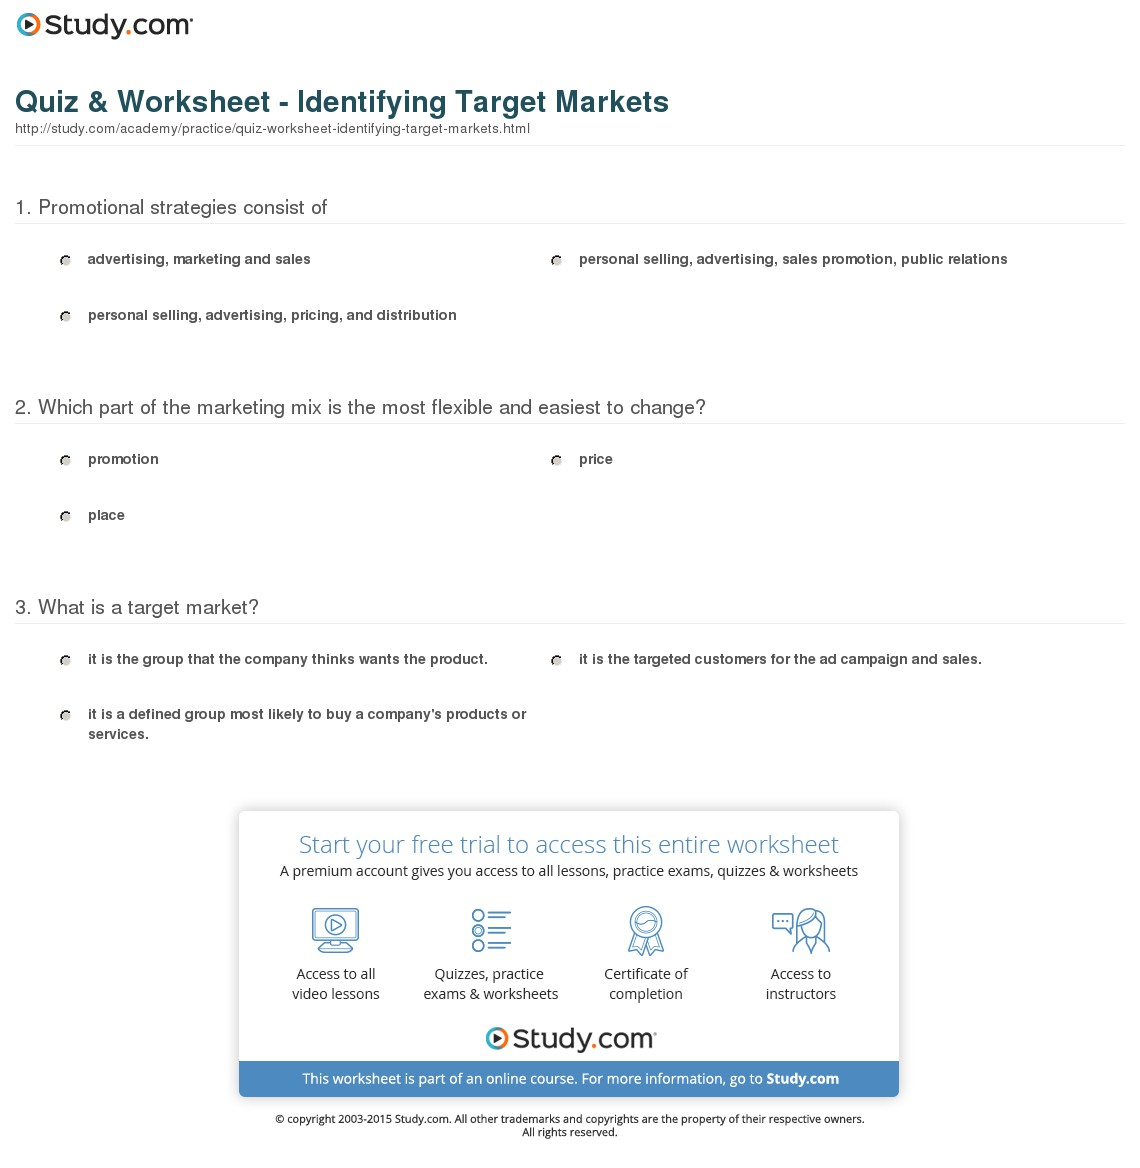 sample quiz and worksheet identifying target markets